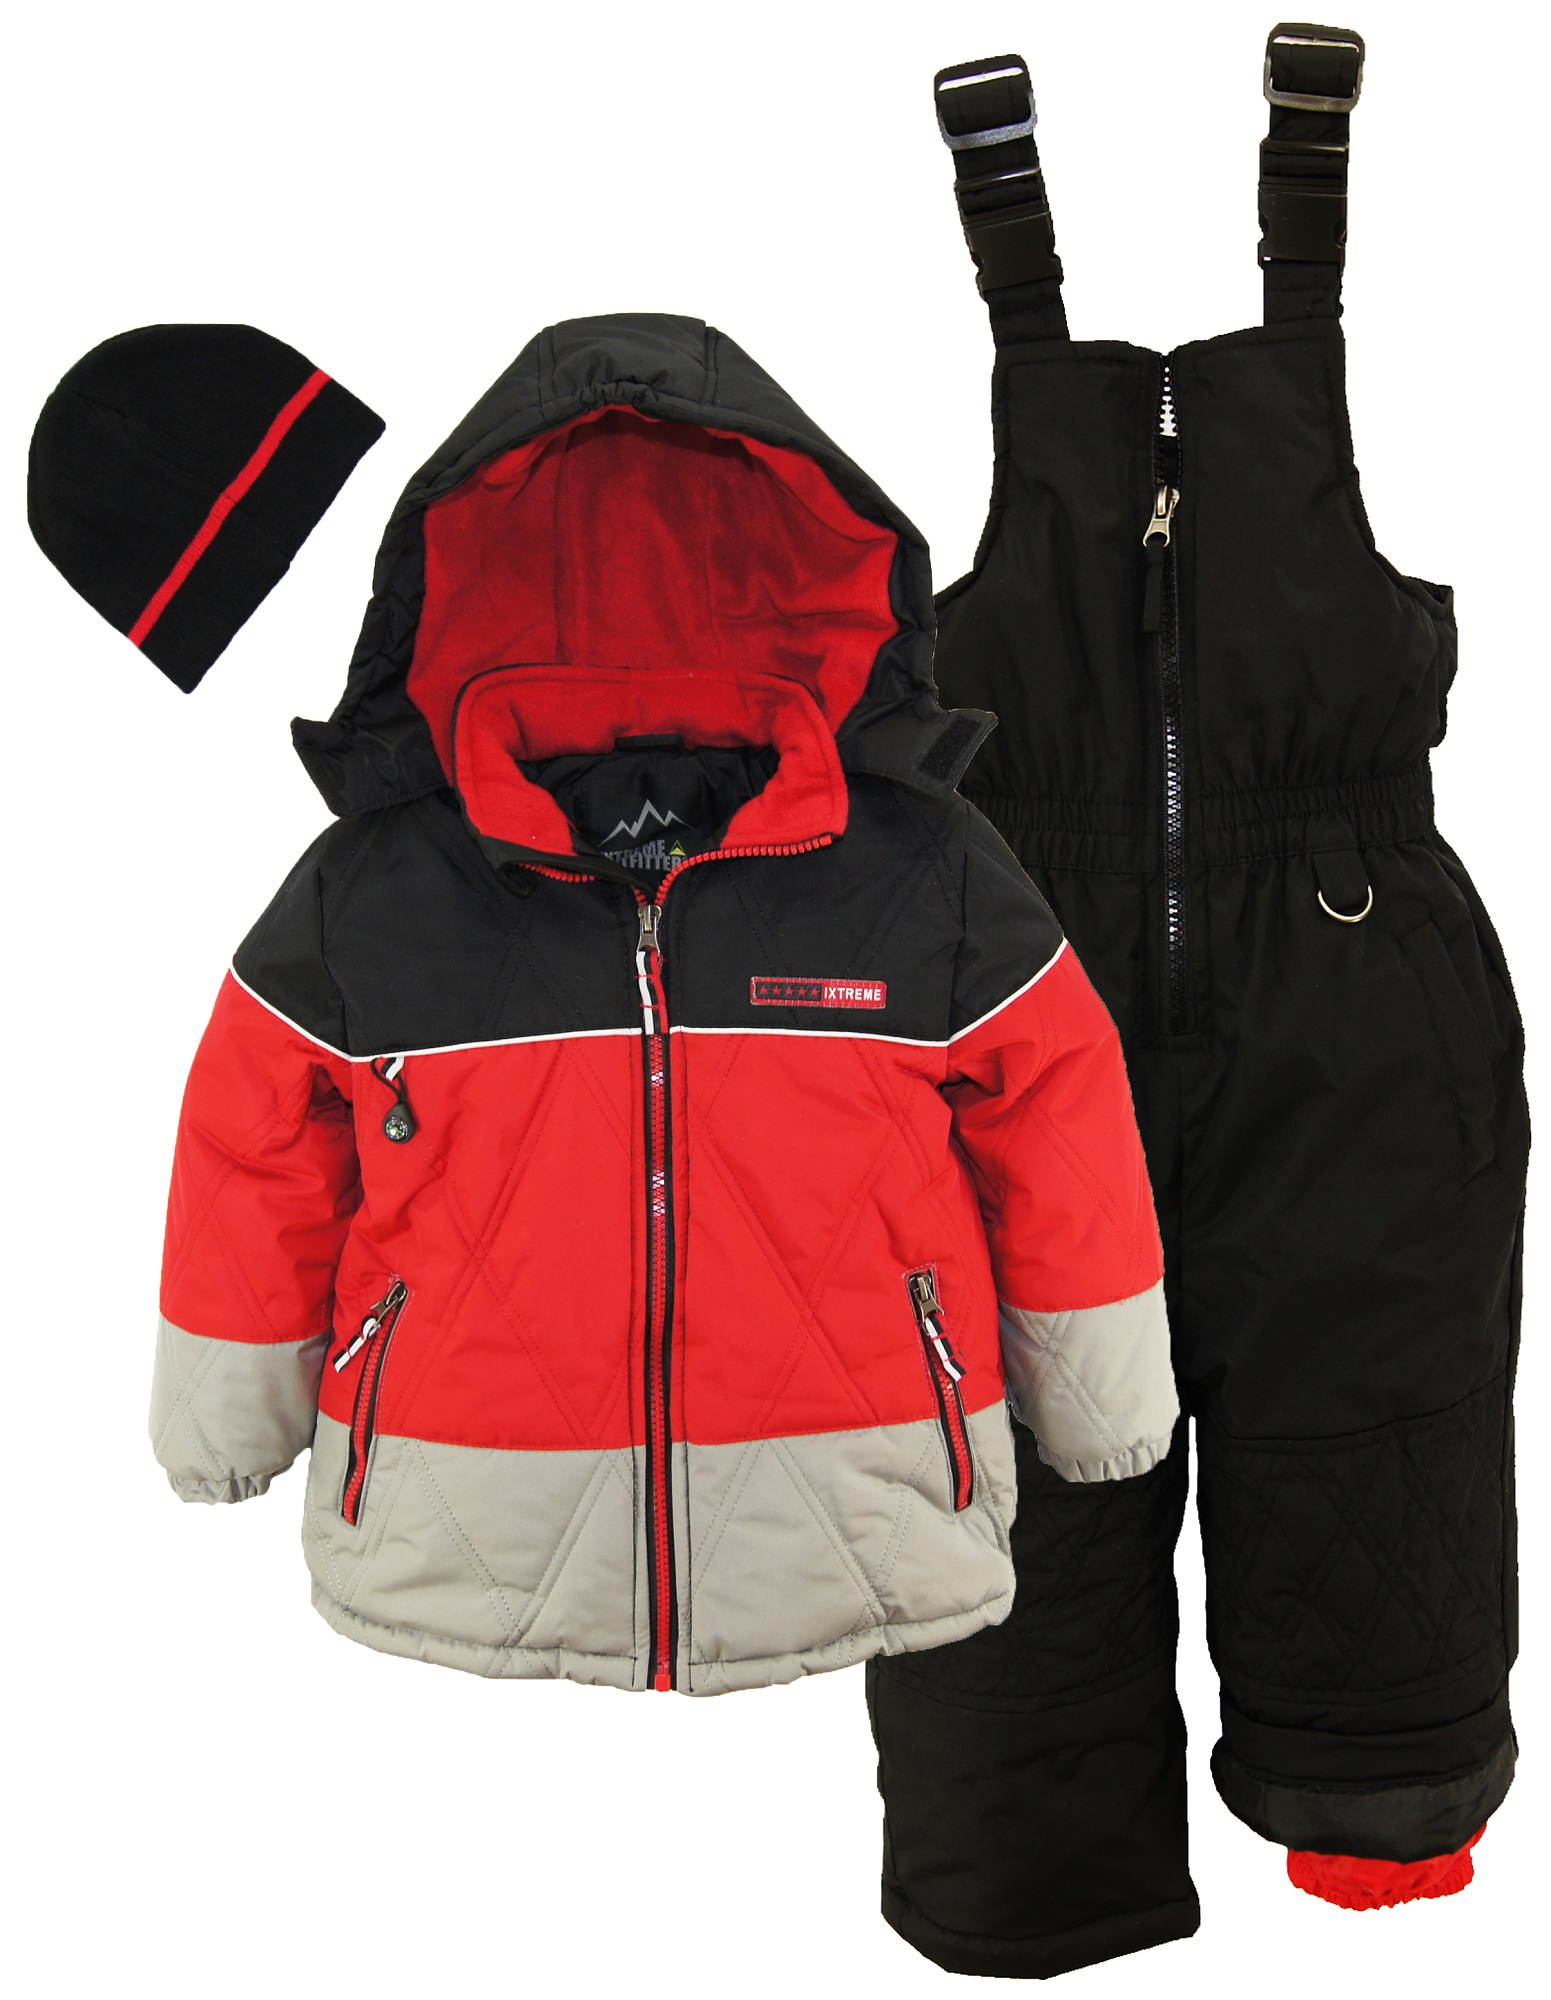 Find great deals on eBay for boys snowsuits. Shop with confidence.